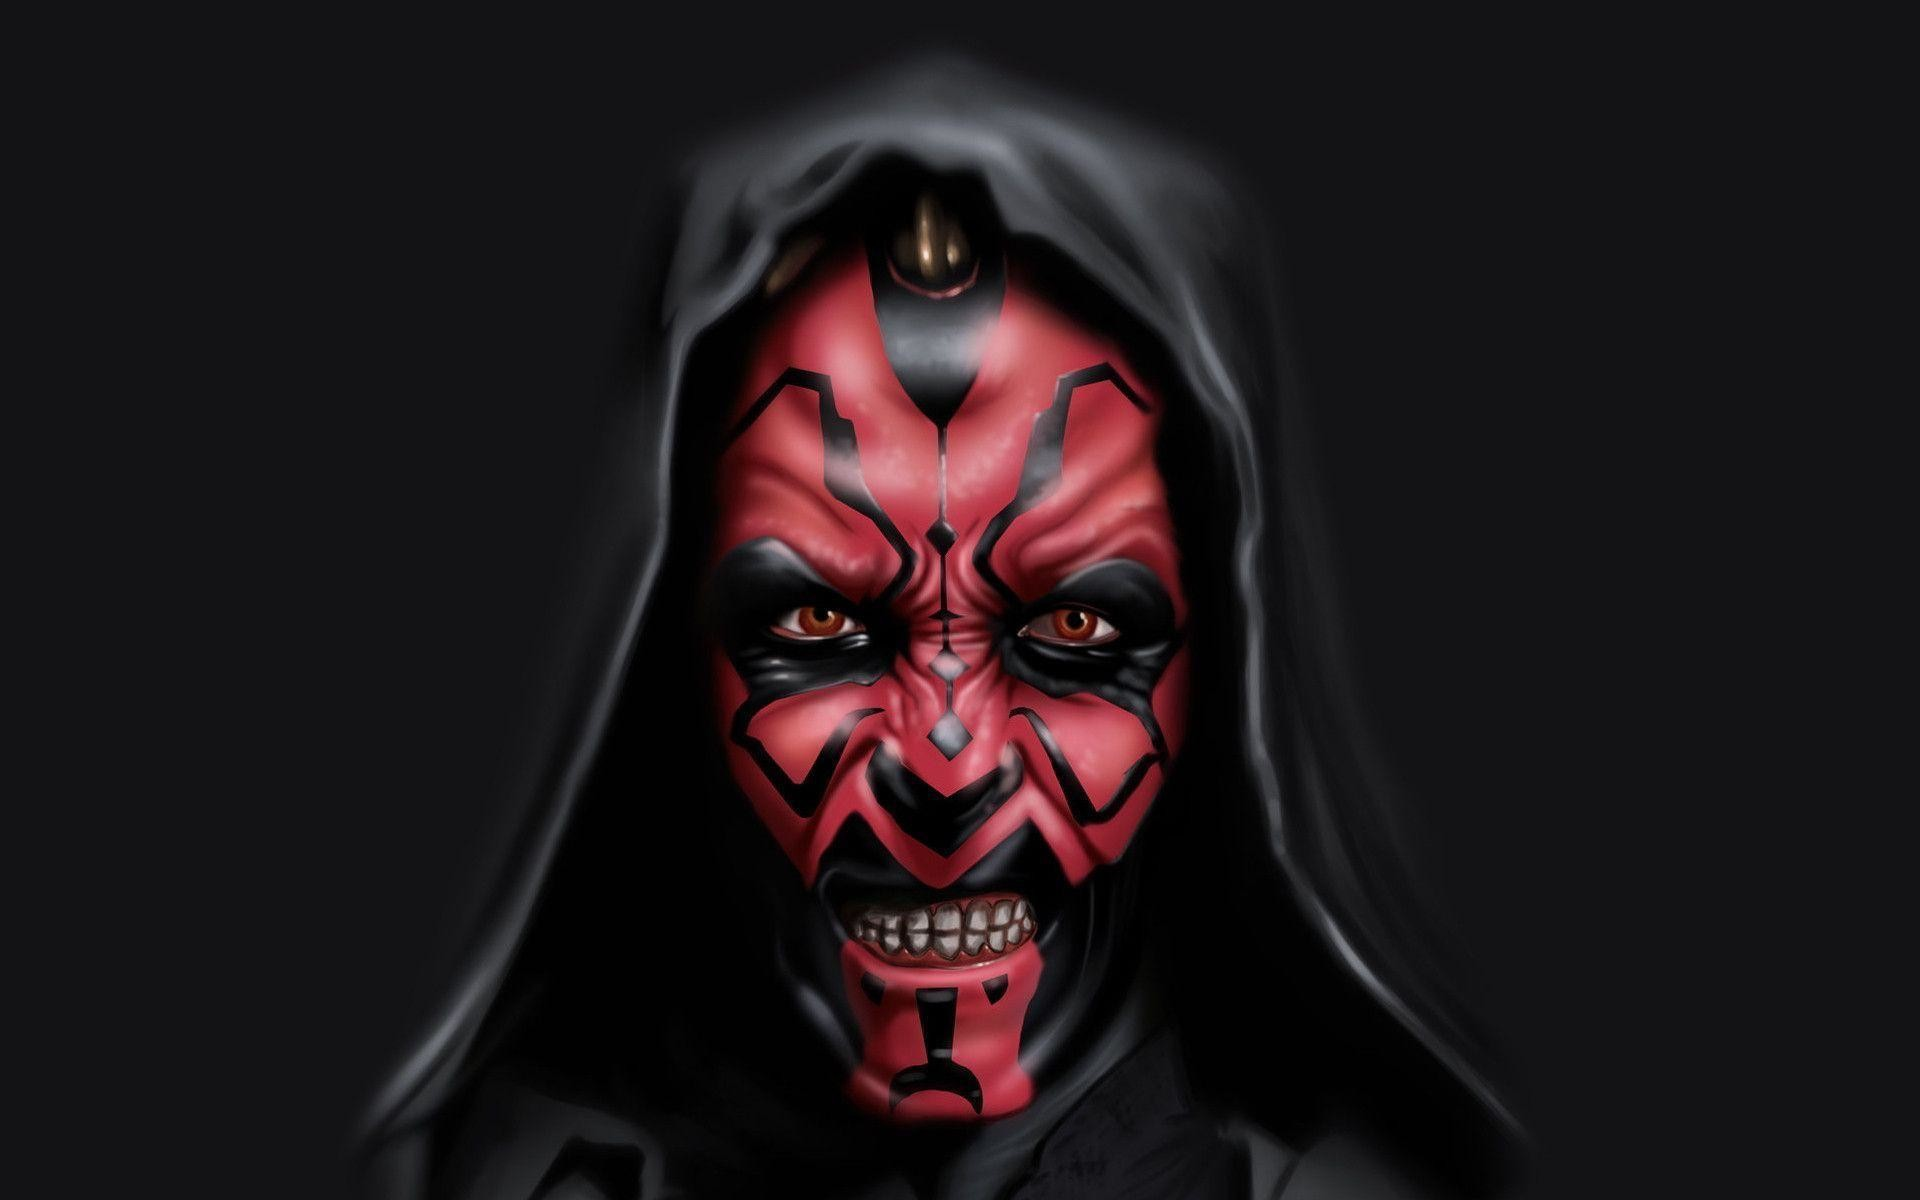 Sith darth maul Wallpapers | Pictures